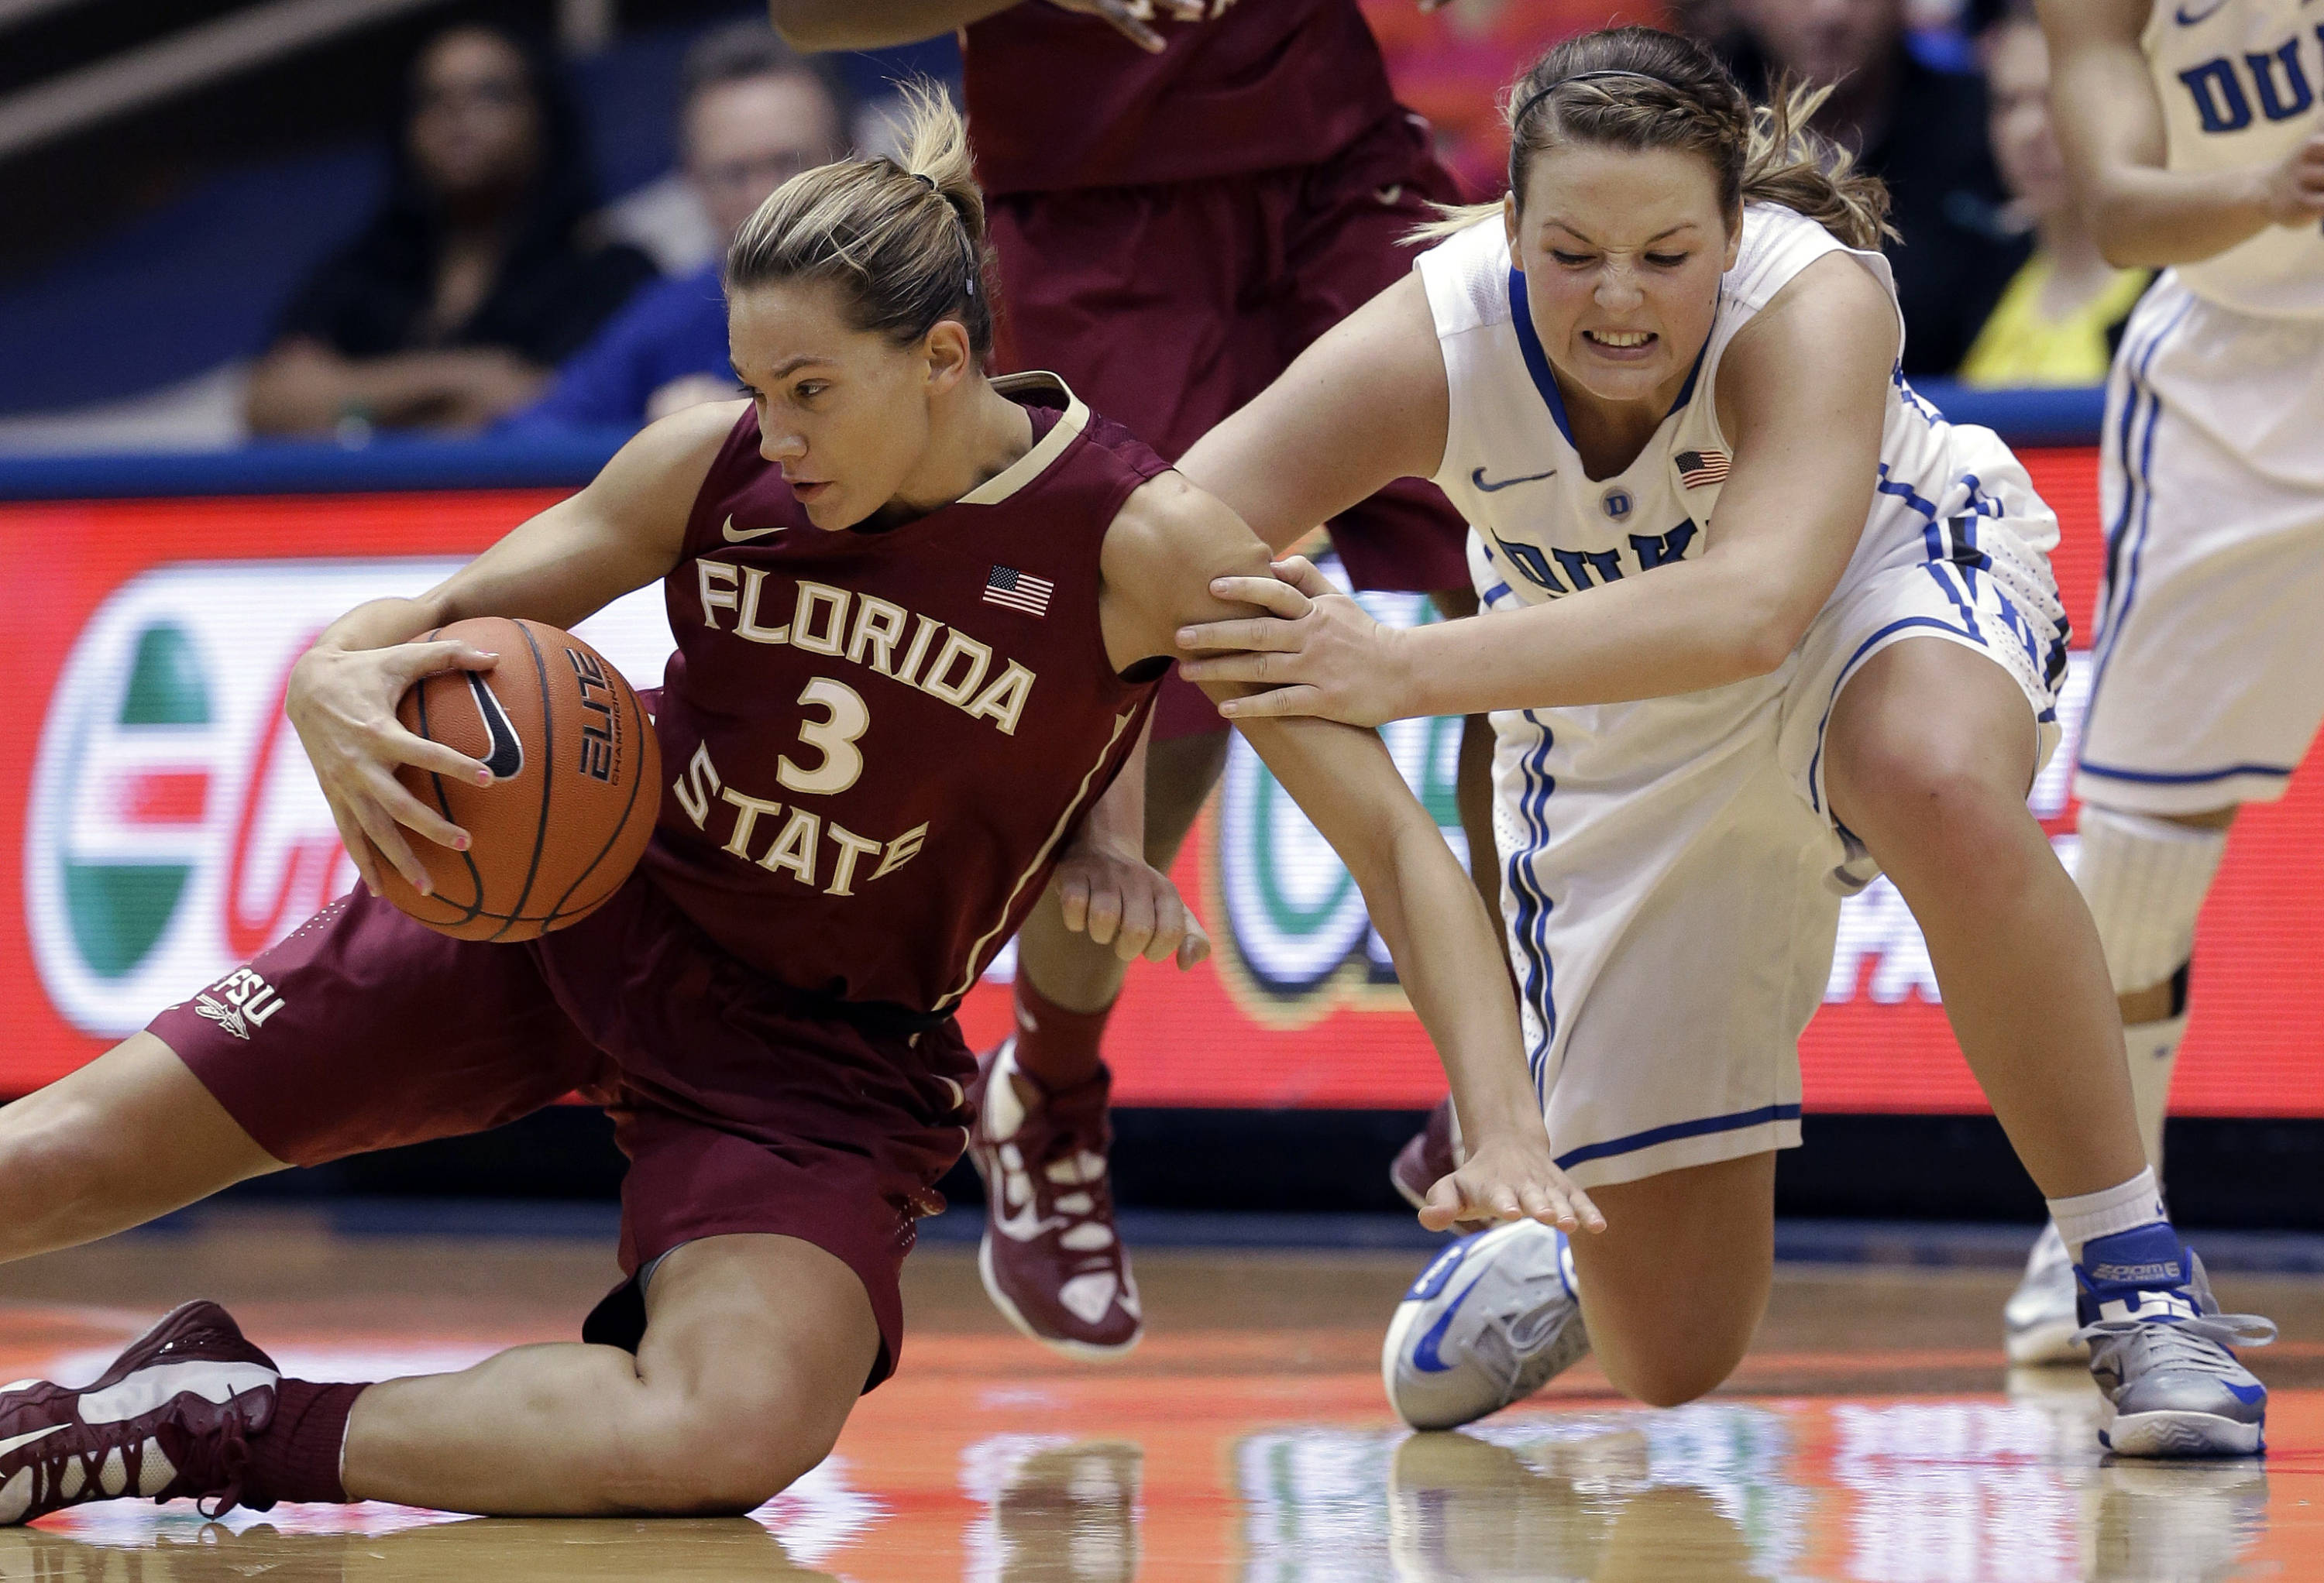 Duke's Tricia Liston, right, and Florida State's Alexa Deluzio (3) struggle for possession of the ball during the second half. (AP Photo/Gerry Broome)